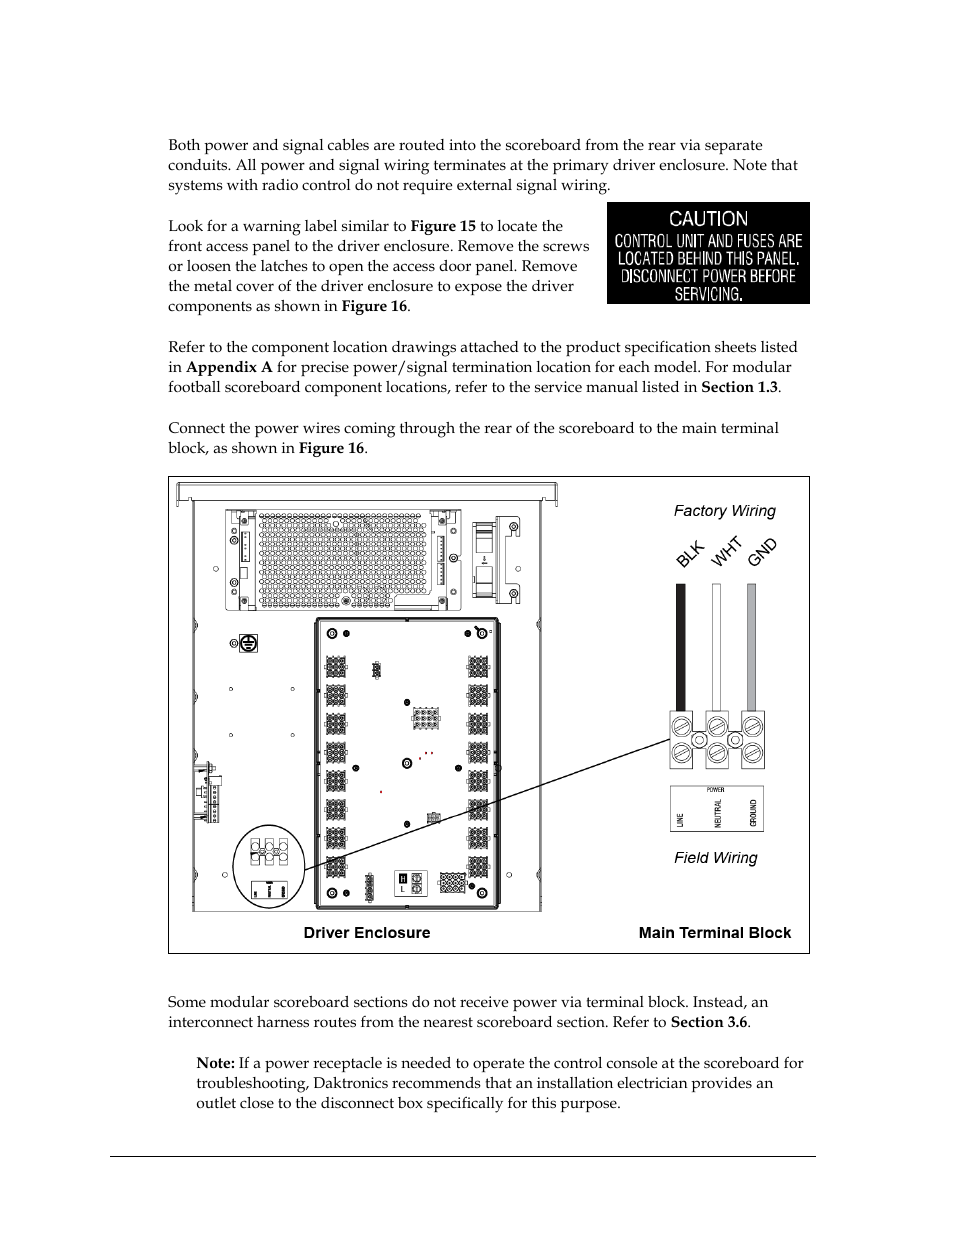 medium resolution of connection daktronics outdoor led scoreboards installation user manual page 22 58